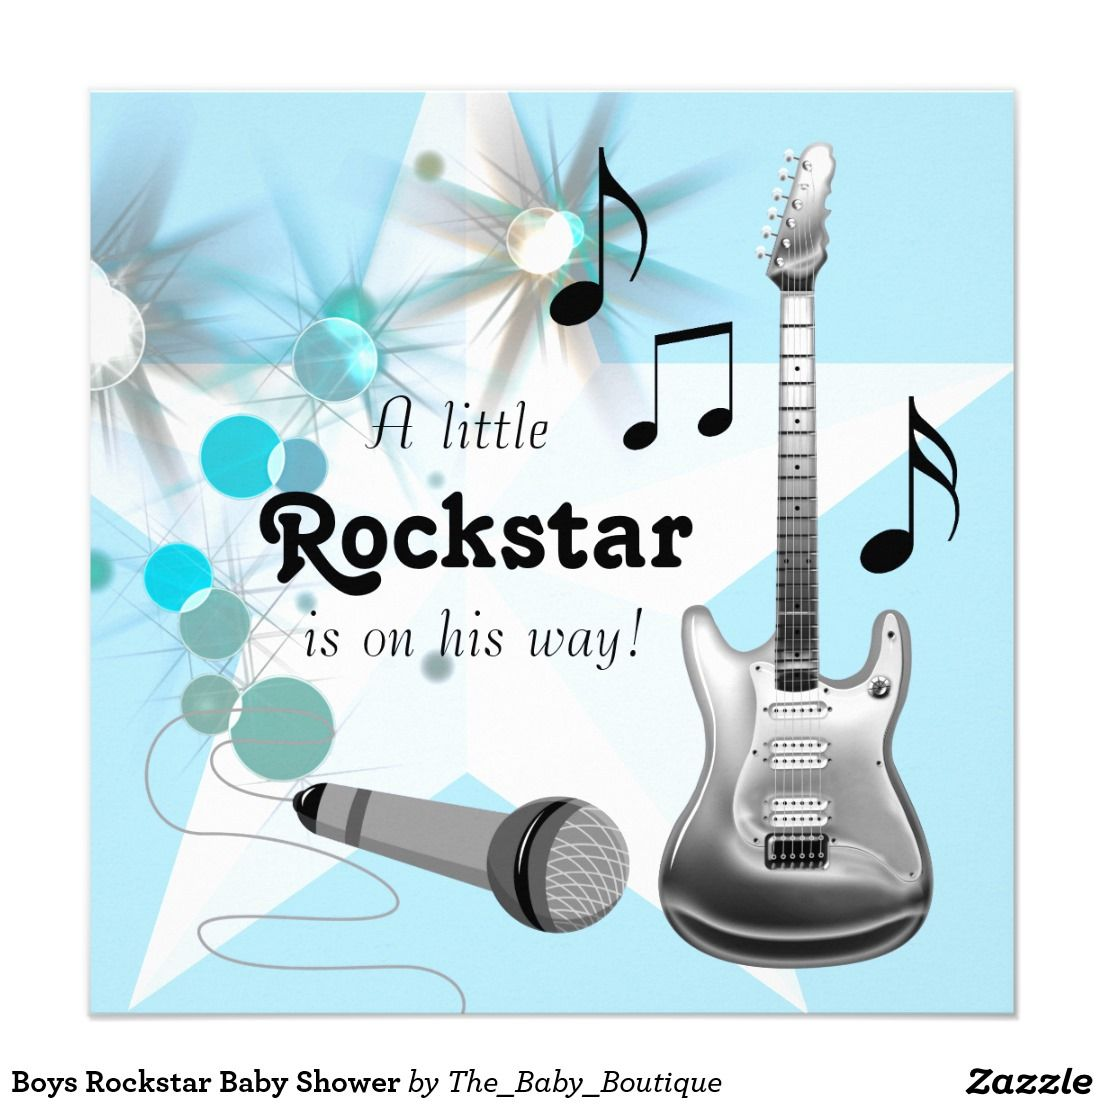 Boys Rockstar Baby Shower Card   Shower invitations and Boy baby showers